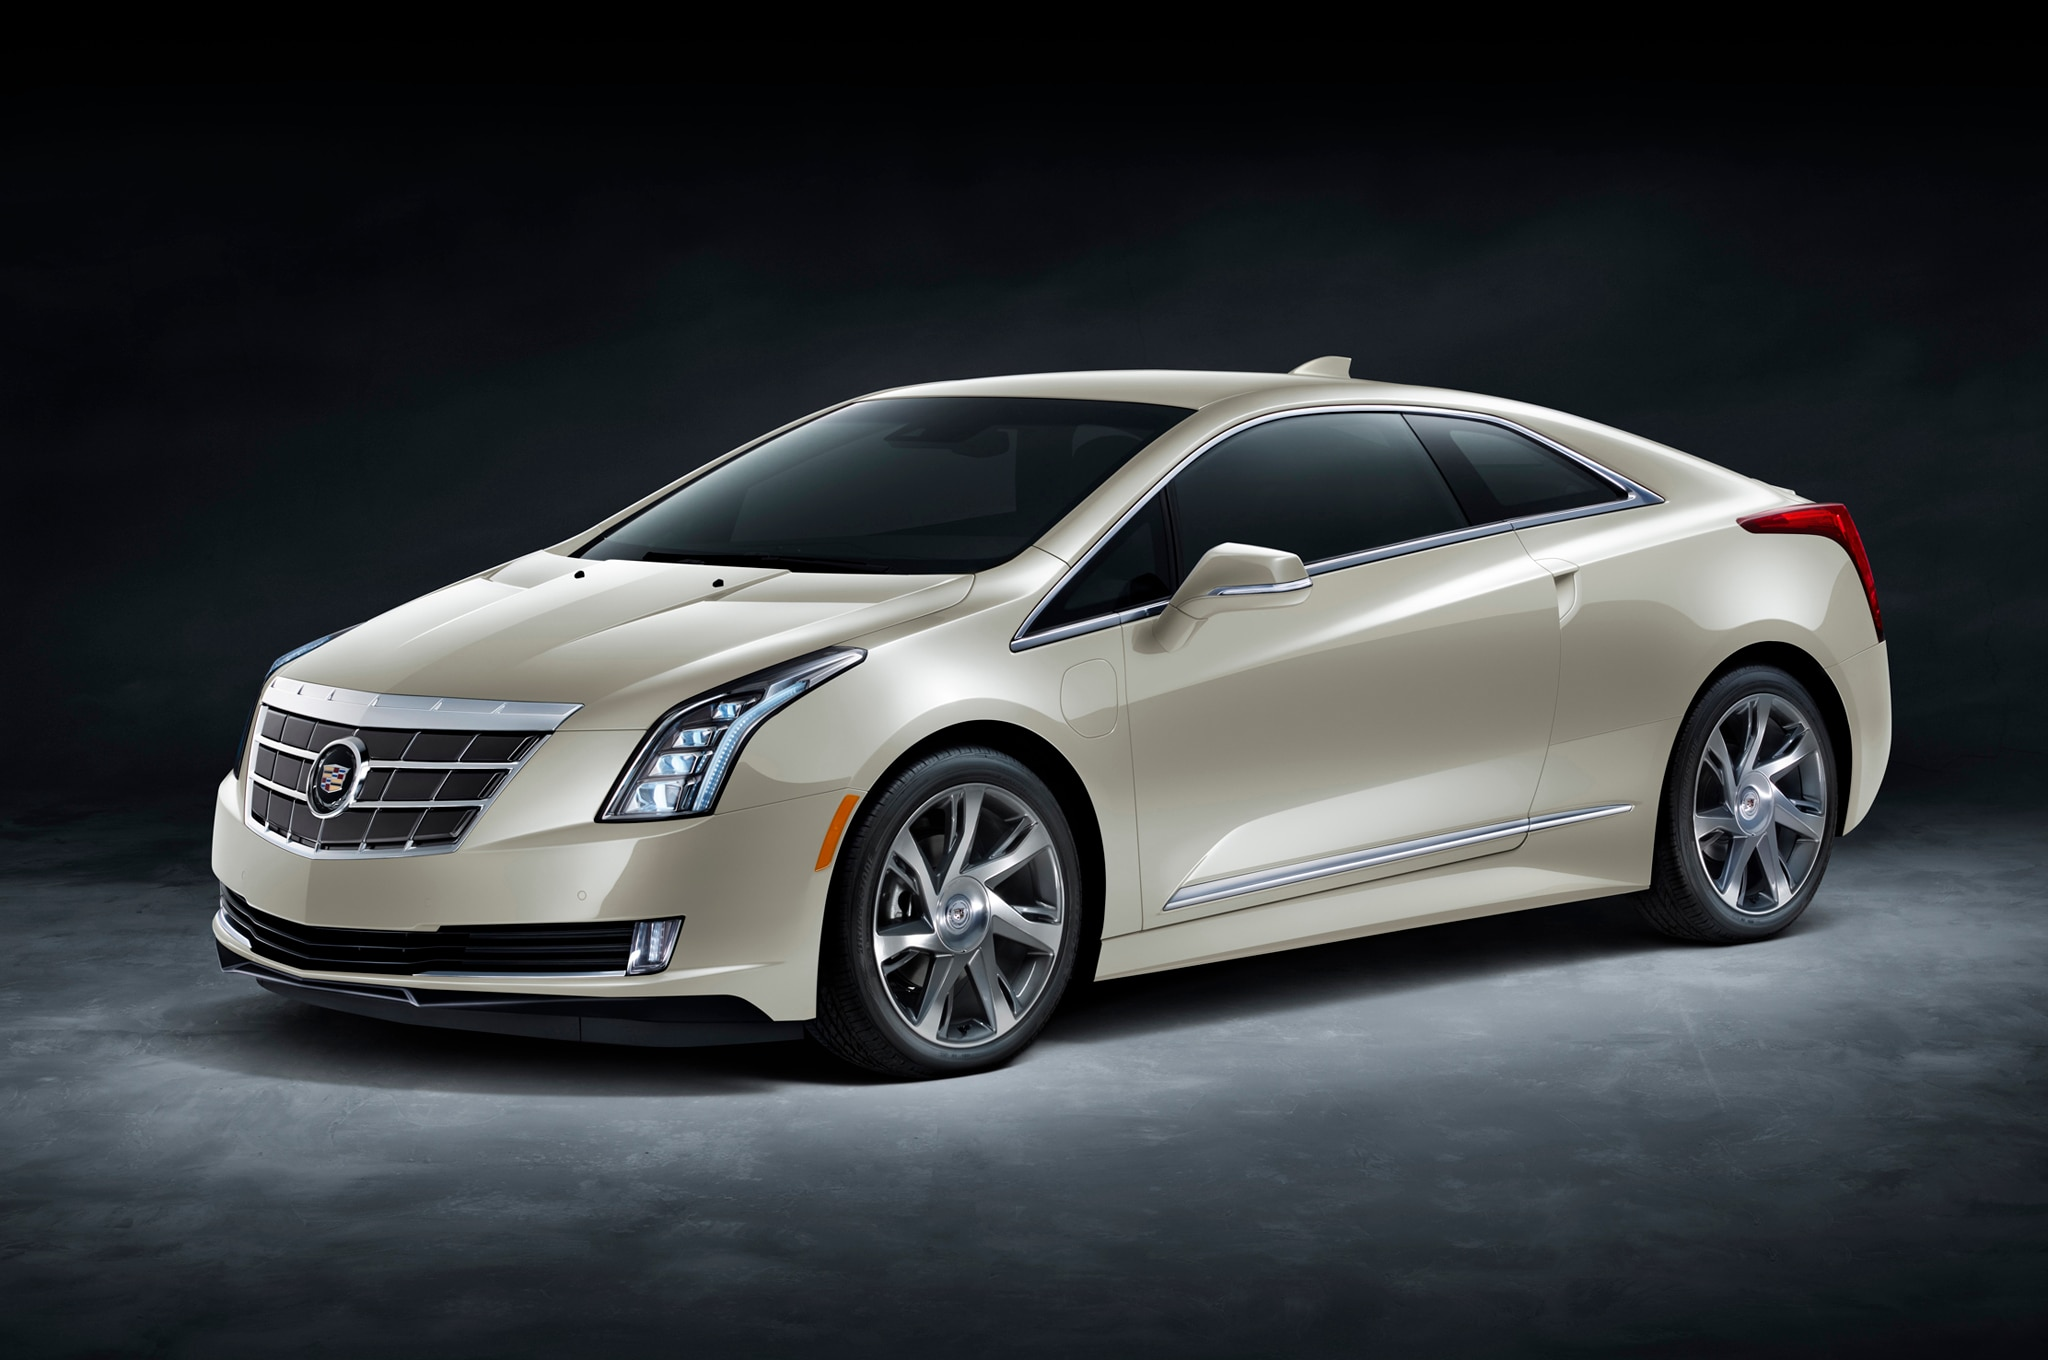 2014 cadillac elr special edition joins saks fifth avenue